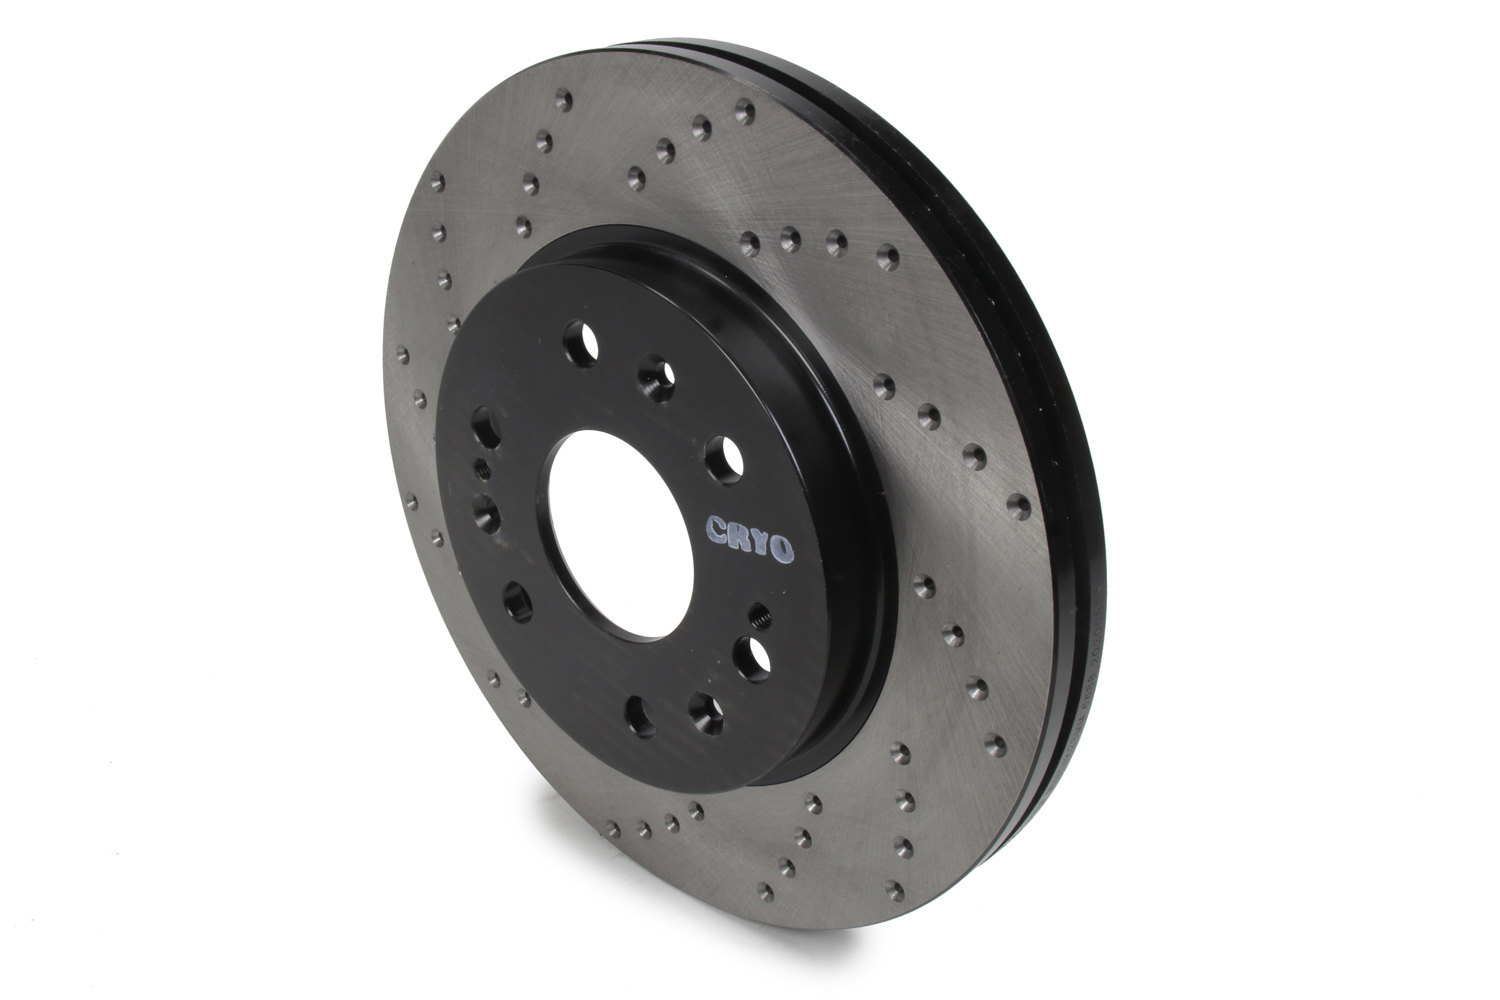 Stoptech 128.66057CR Brake Rotor, Sport Cryo, Front, Passenger Side, Drilled / Slotted, 330 mm OD, 30 mm Thickness, 6 x 140.5 mm Bolt Pattern, Iron, Black Paint, Each